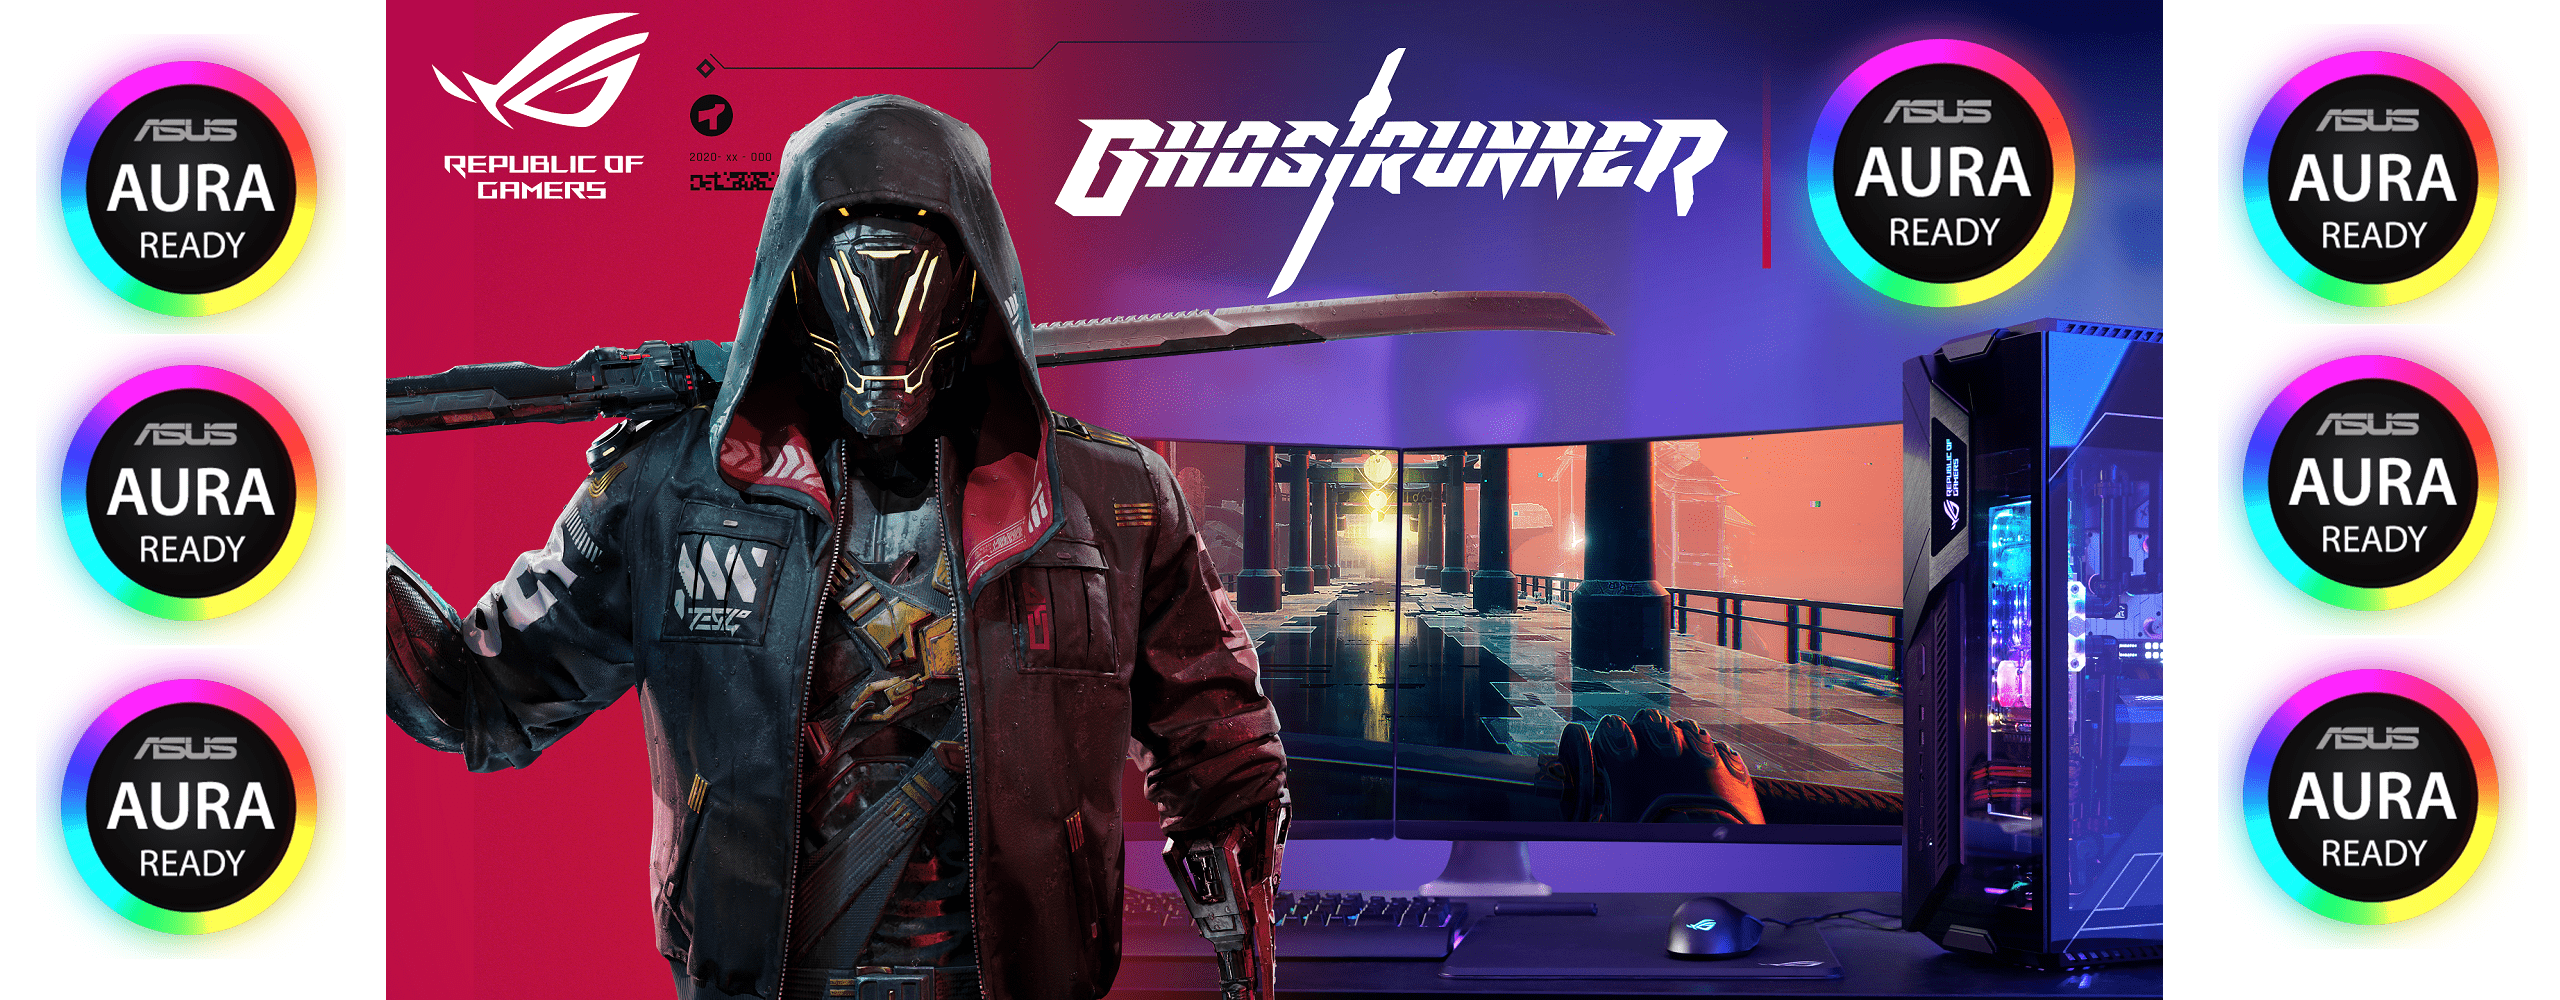 ASUS ROG X Ghostrunner Featuring AURA Ready